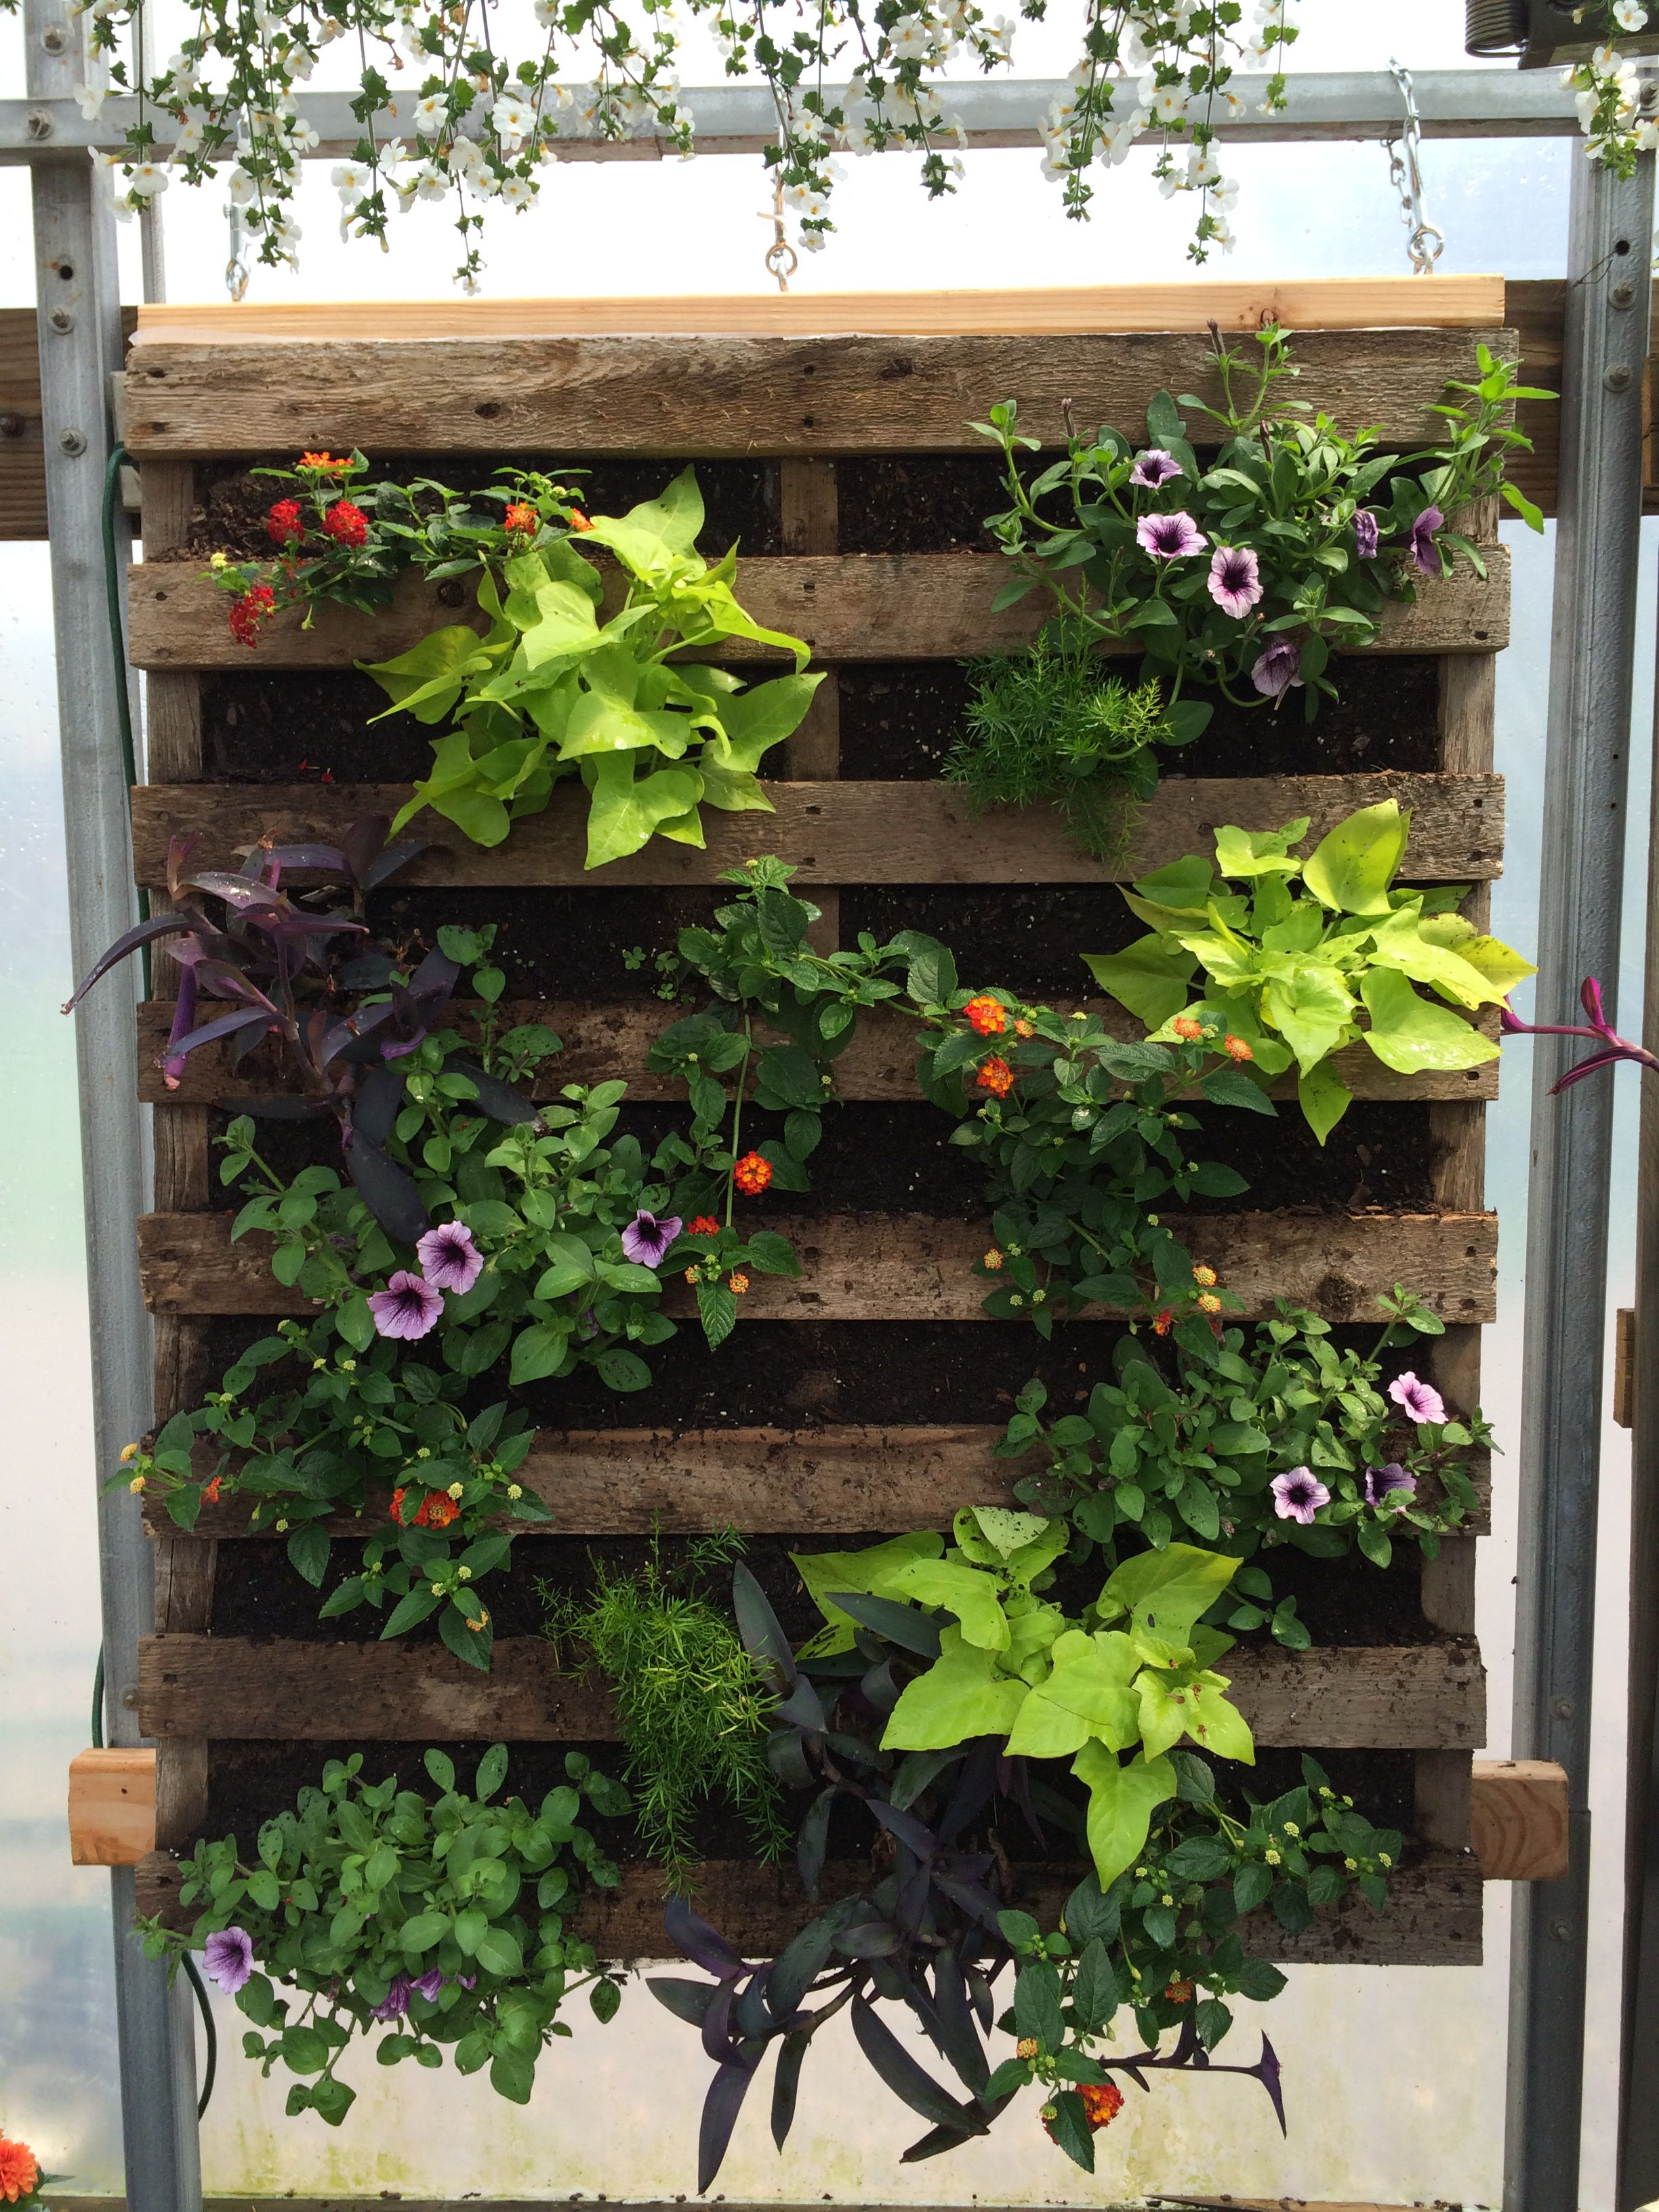 Cool vertical garden idea using a pallet.  Credit to Bromms Lullaby Farm, Bucks County, PA